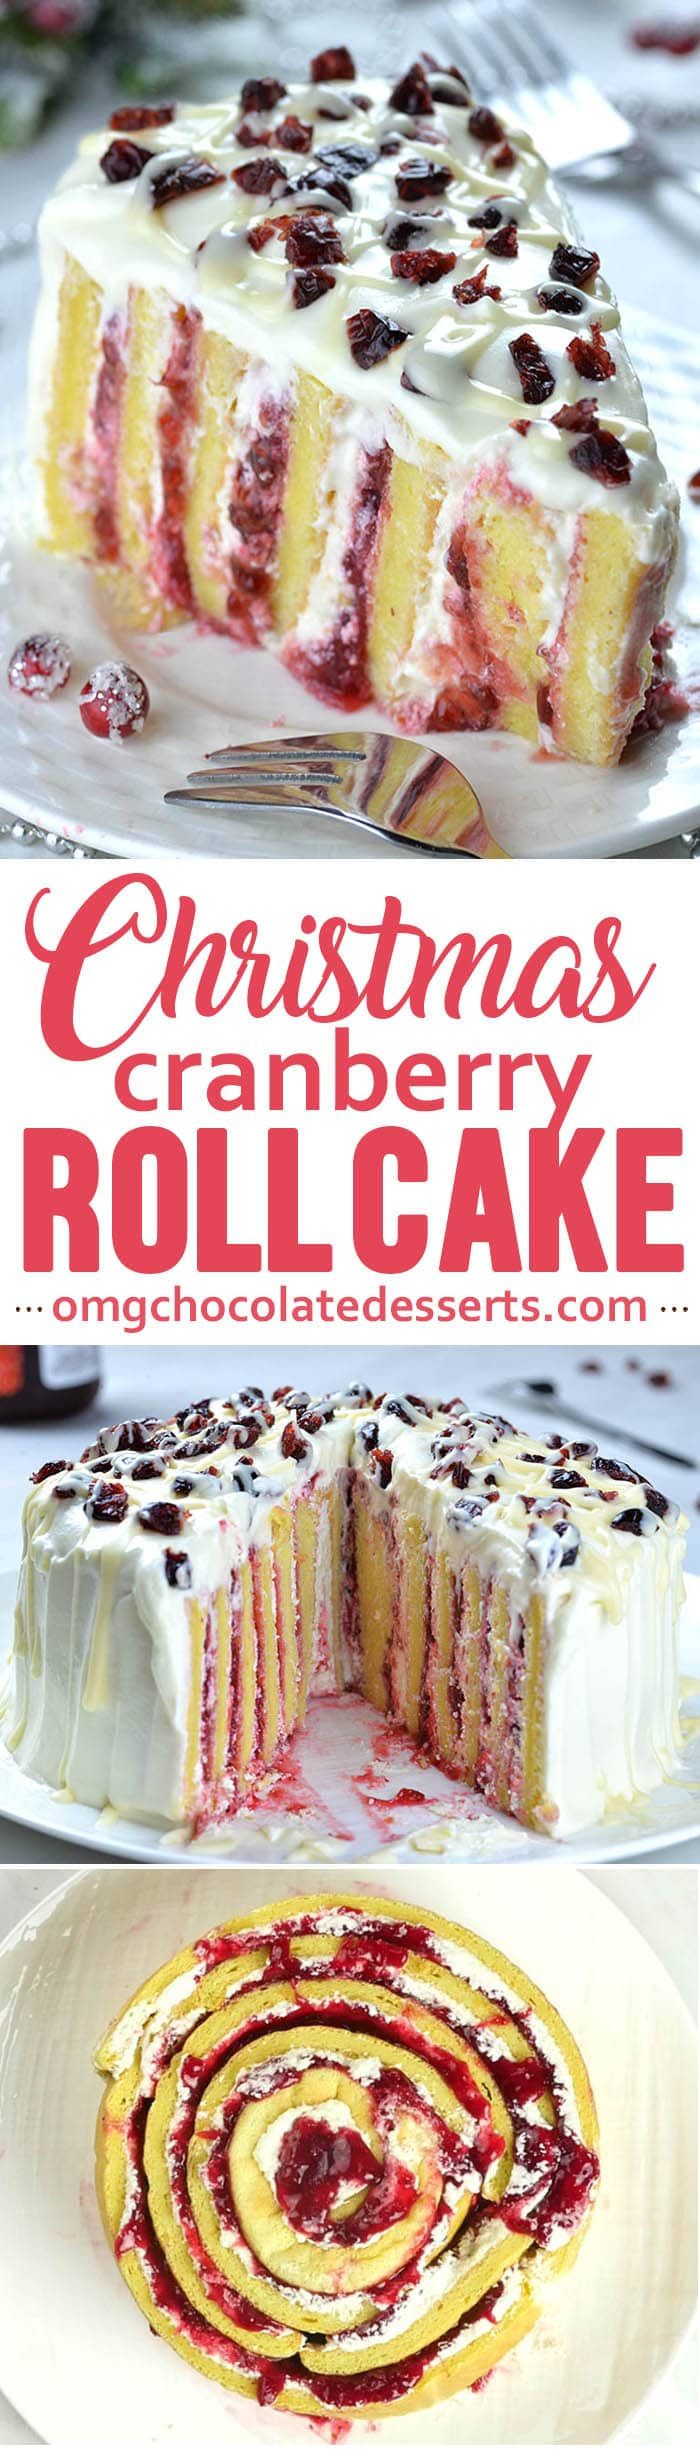 Cranberry Christmas Cake is vertical multi-layer madness of moist vanilla sponge, cranberry filling and white chocolate cream cheese frosting. It's delicious Christmas dessert